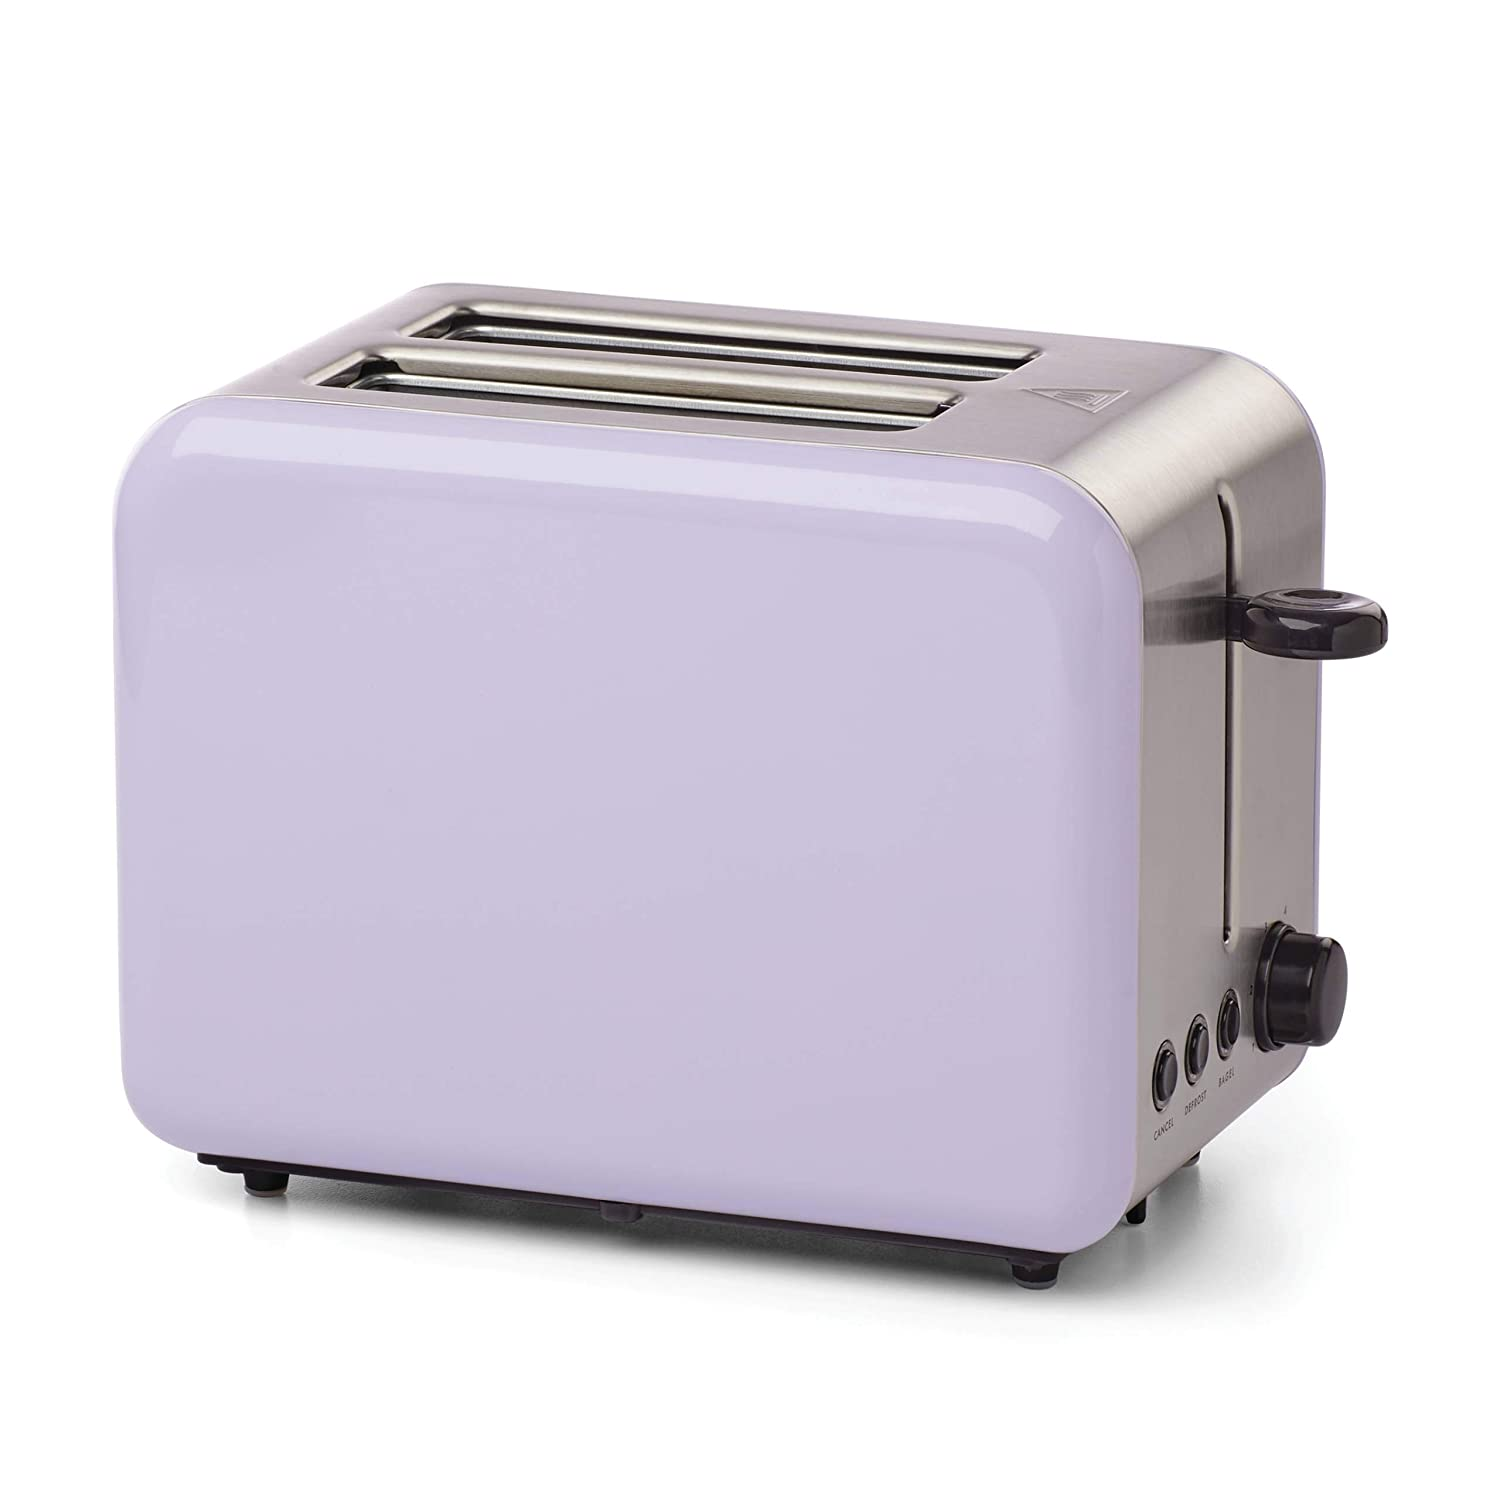 Kate Spade New York 888392 Toaster, Lilac